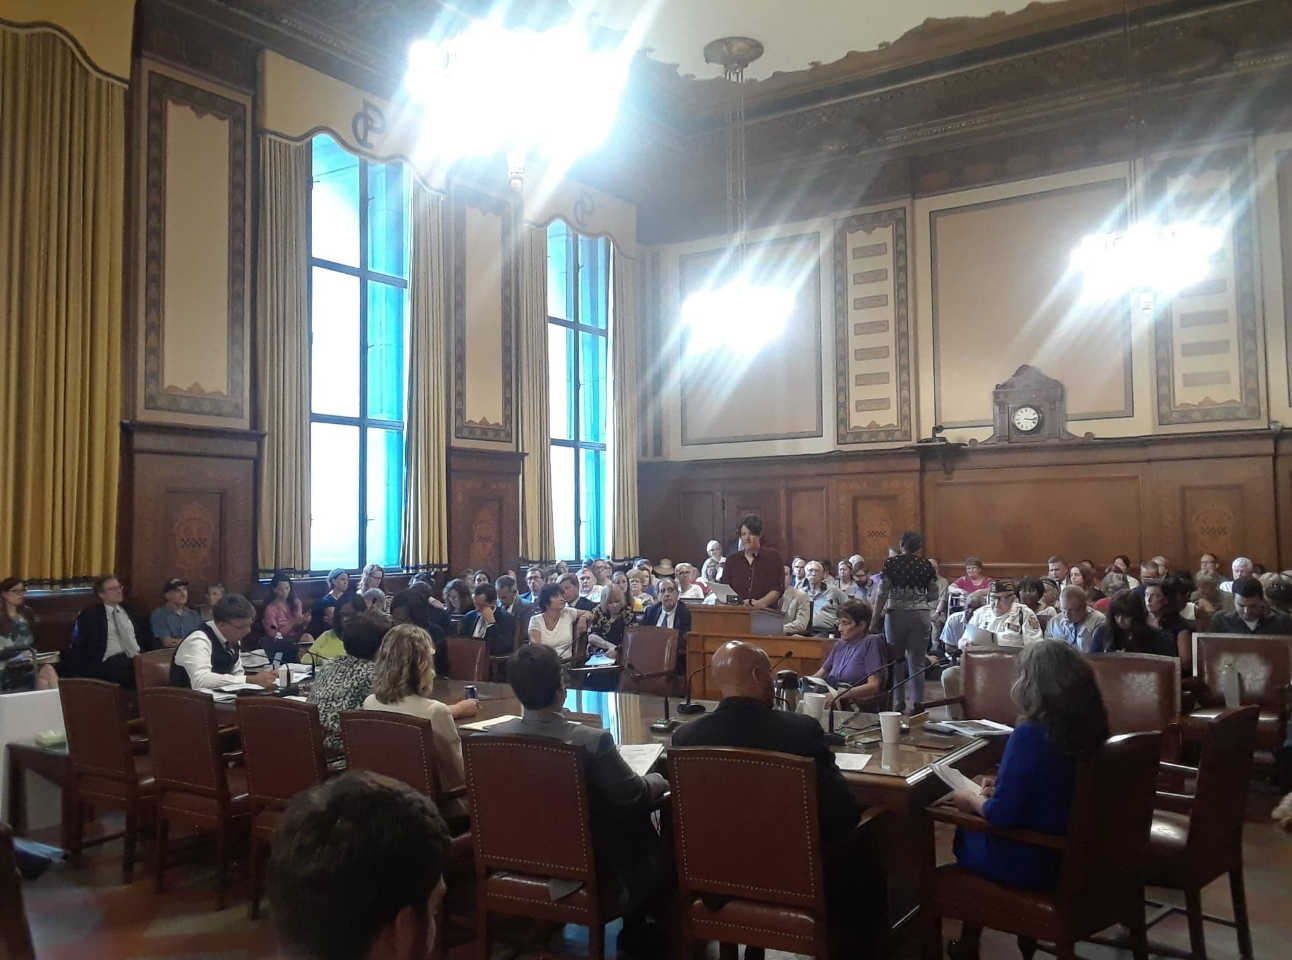 Over 150 people gathered at Pittsburgh City Council to voice their concerns surrounding UPMC Mercy's planned expansion, which comes as part of the hospital system's $2 billion plan to construct three new hospitals around the City.